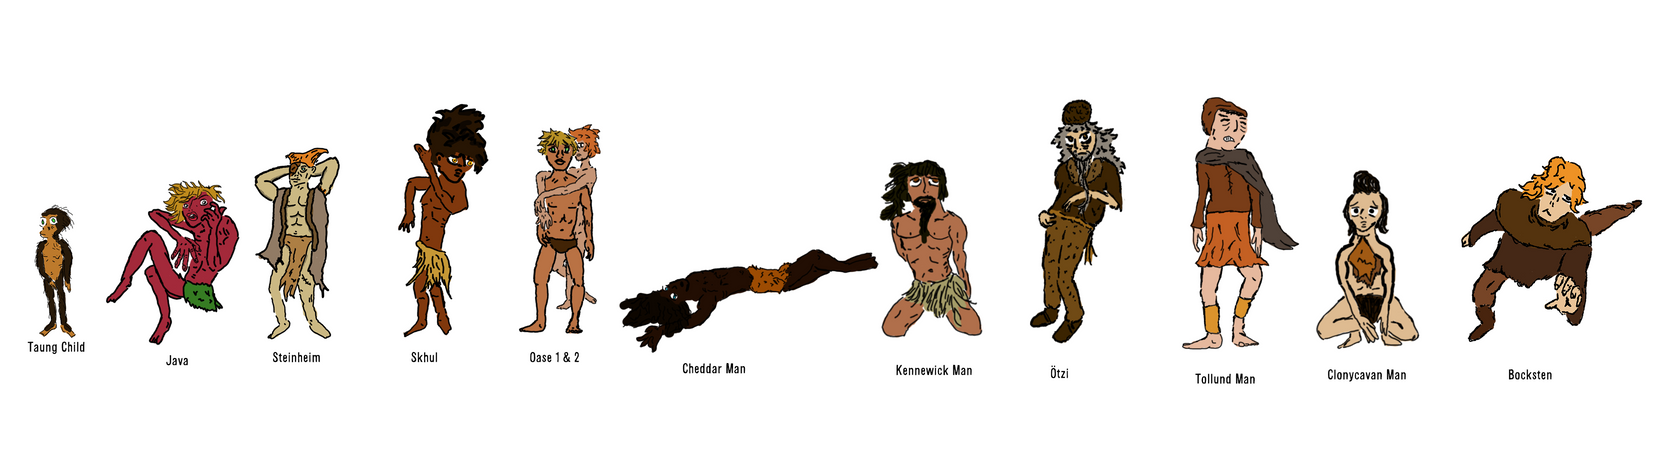 Human Individuals throughout History (Males) by aGentlemanScientist